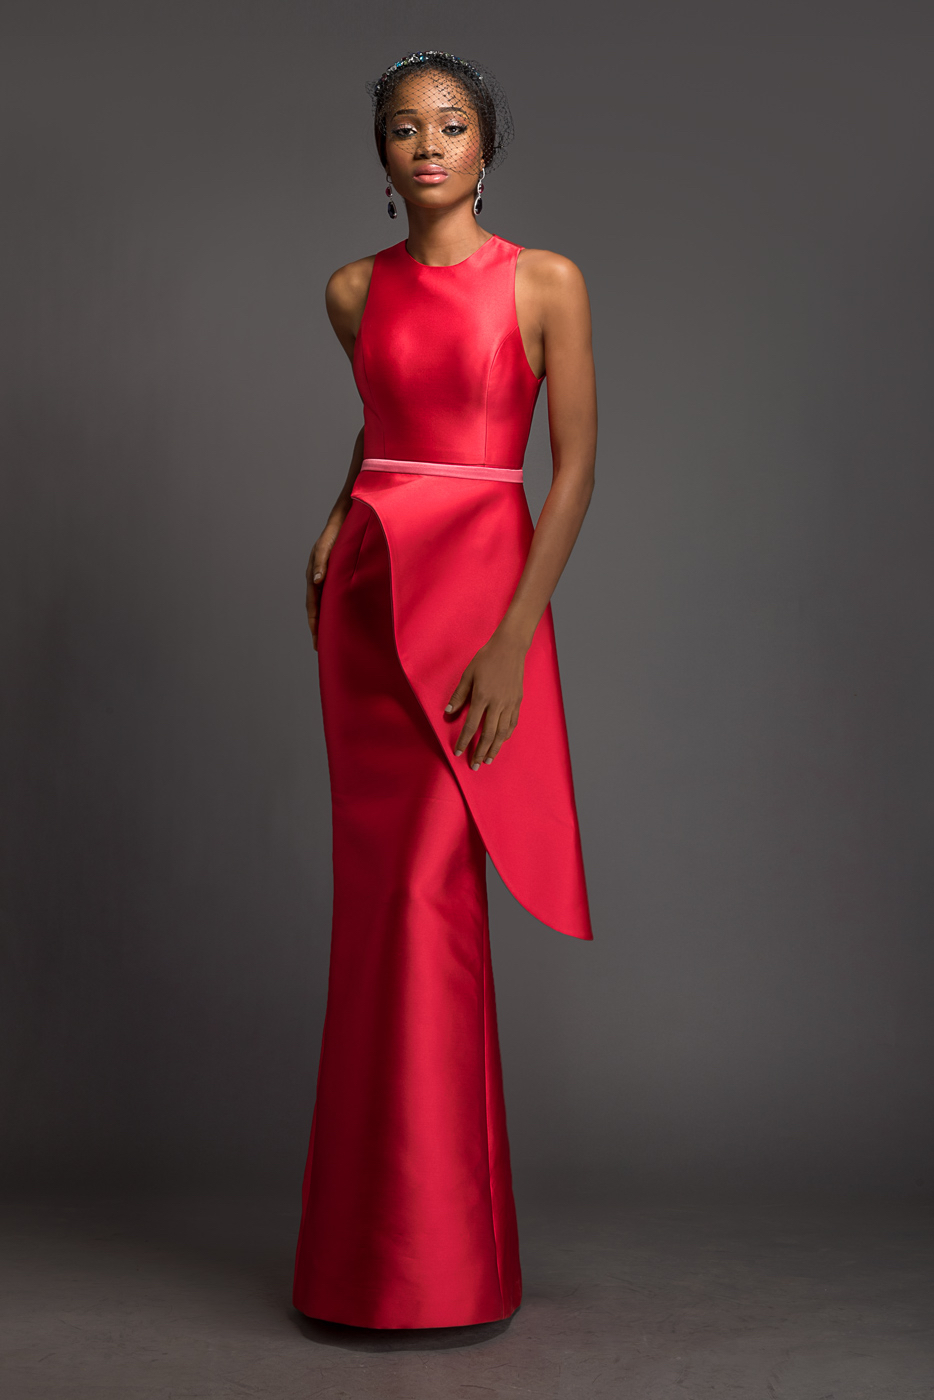 CLAUDIA Alizarin floor length dress with detachable cherry blossom pink and alizarin side peplum.